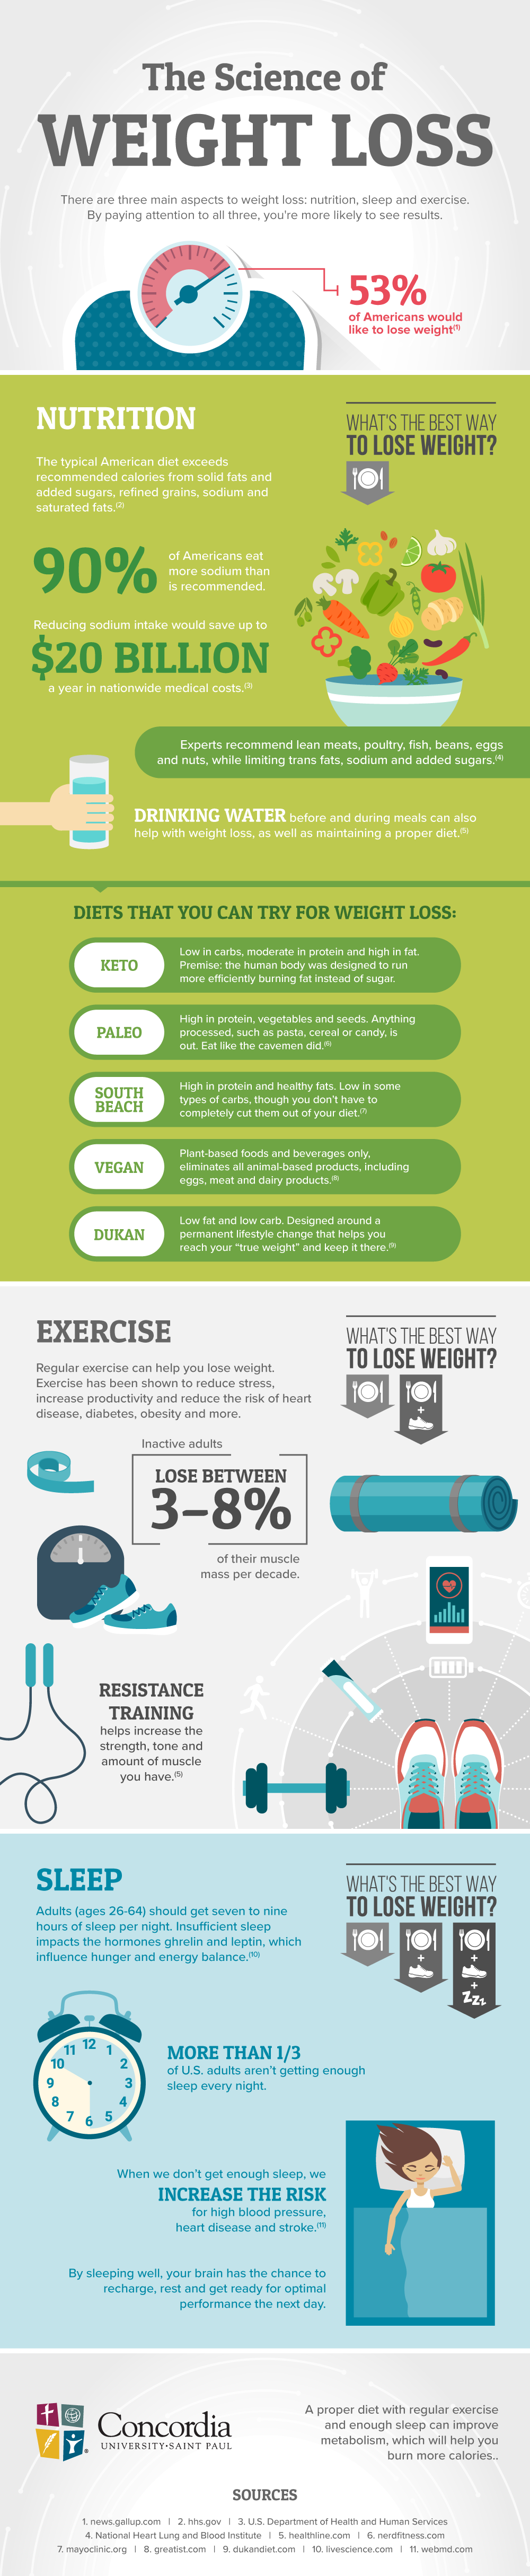 The Science of Weight Loss #infographic